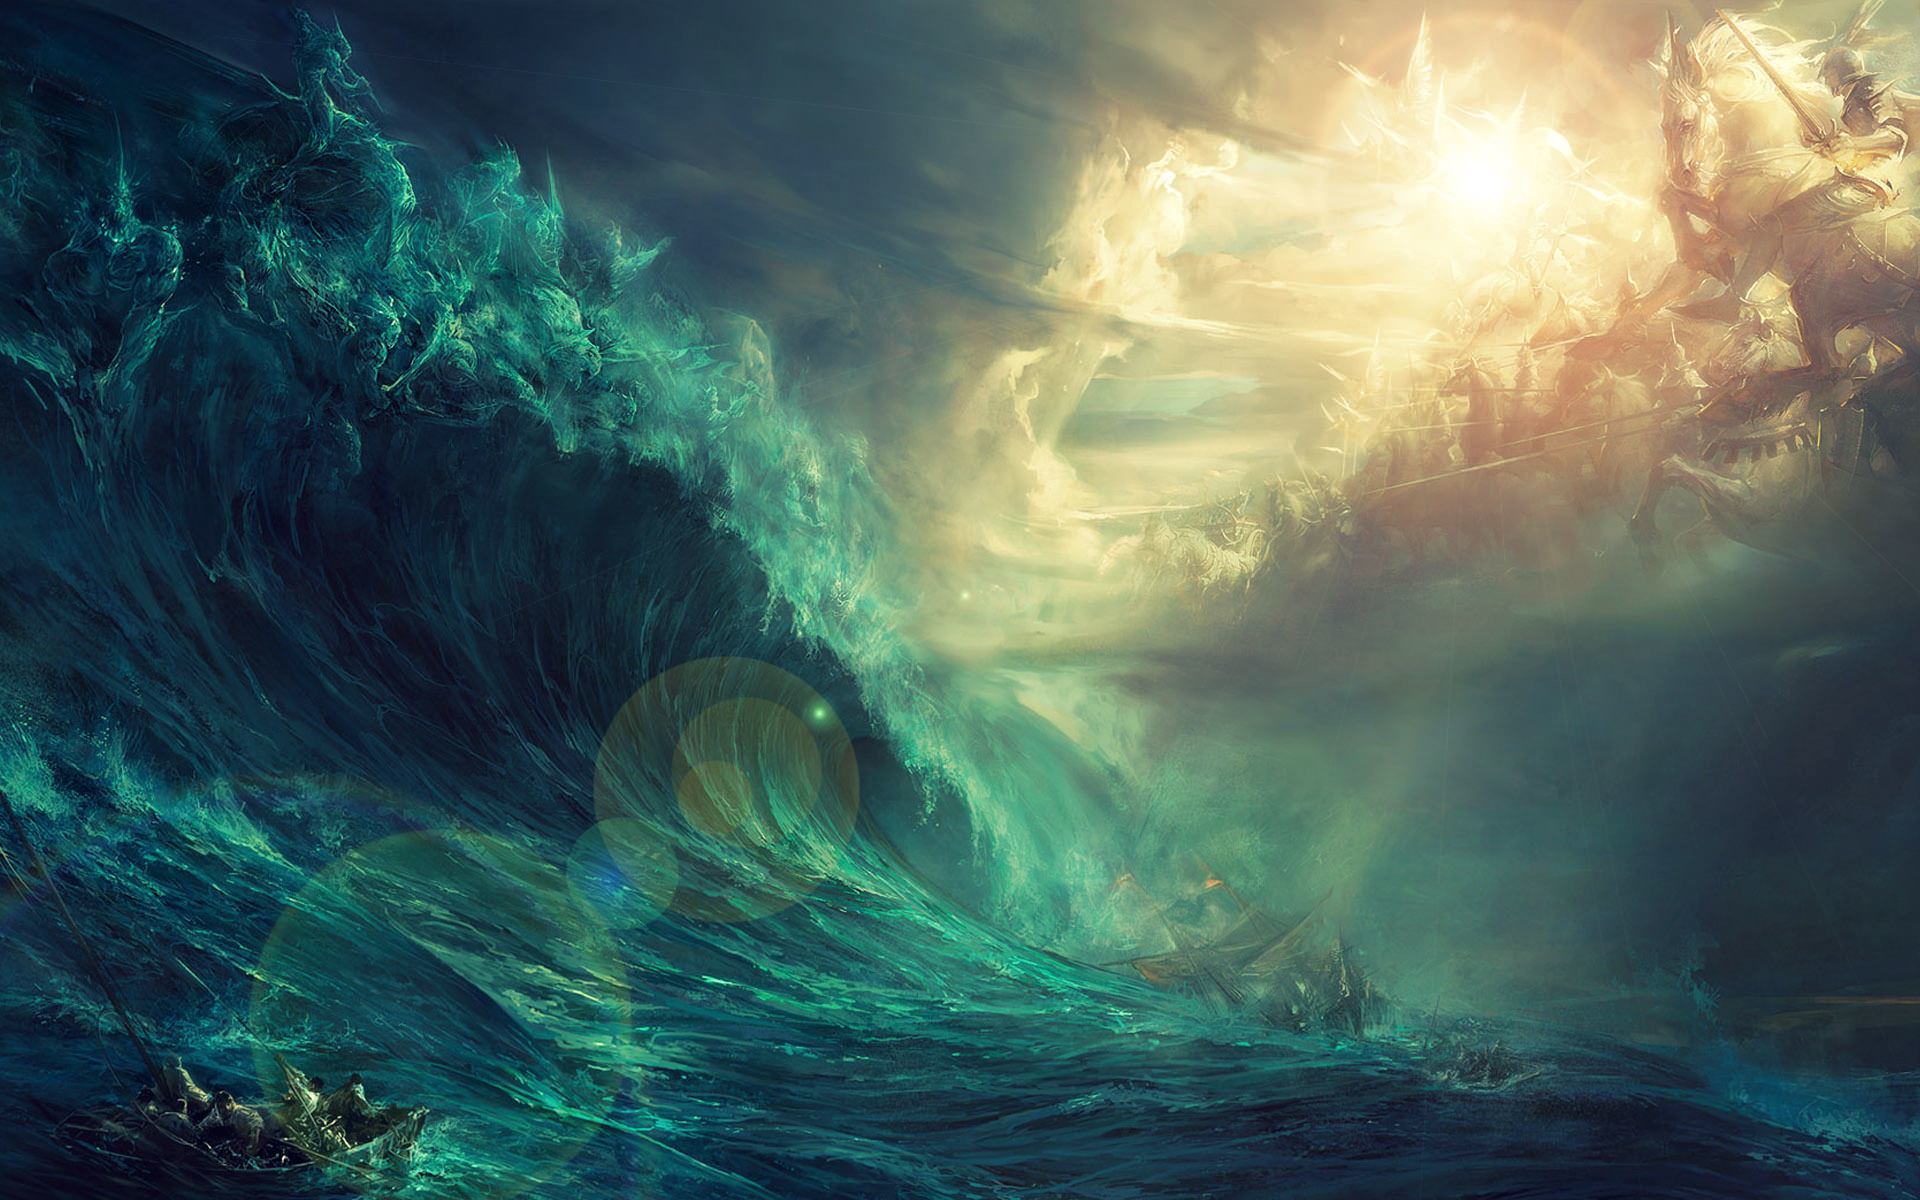 Epic Wallpaper and Screensavers (67+ images)